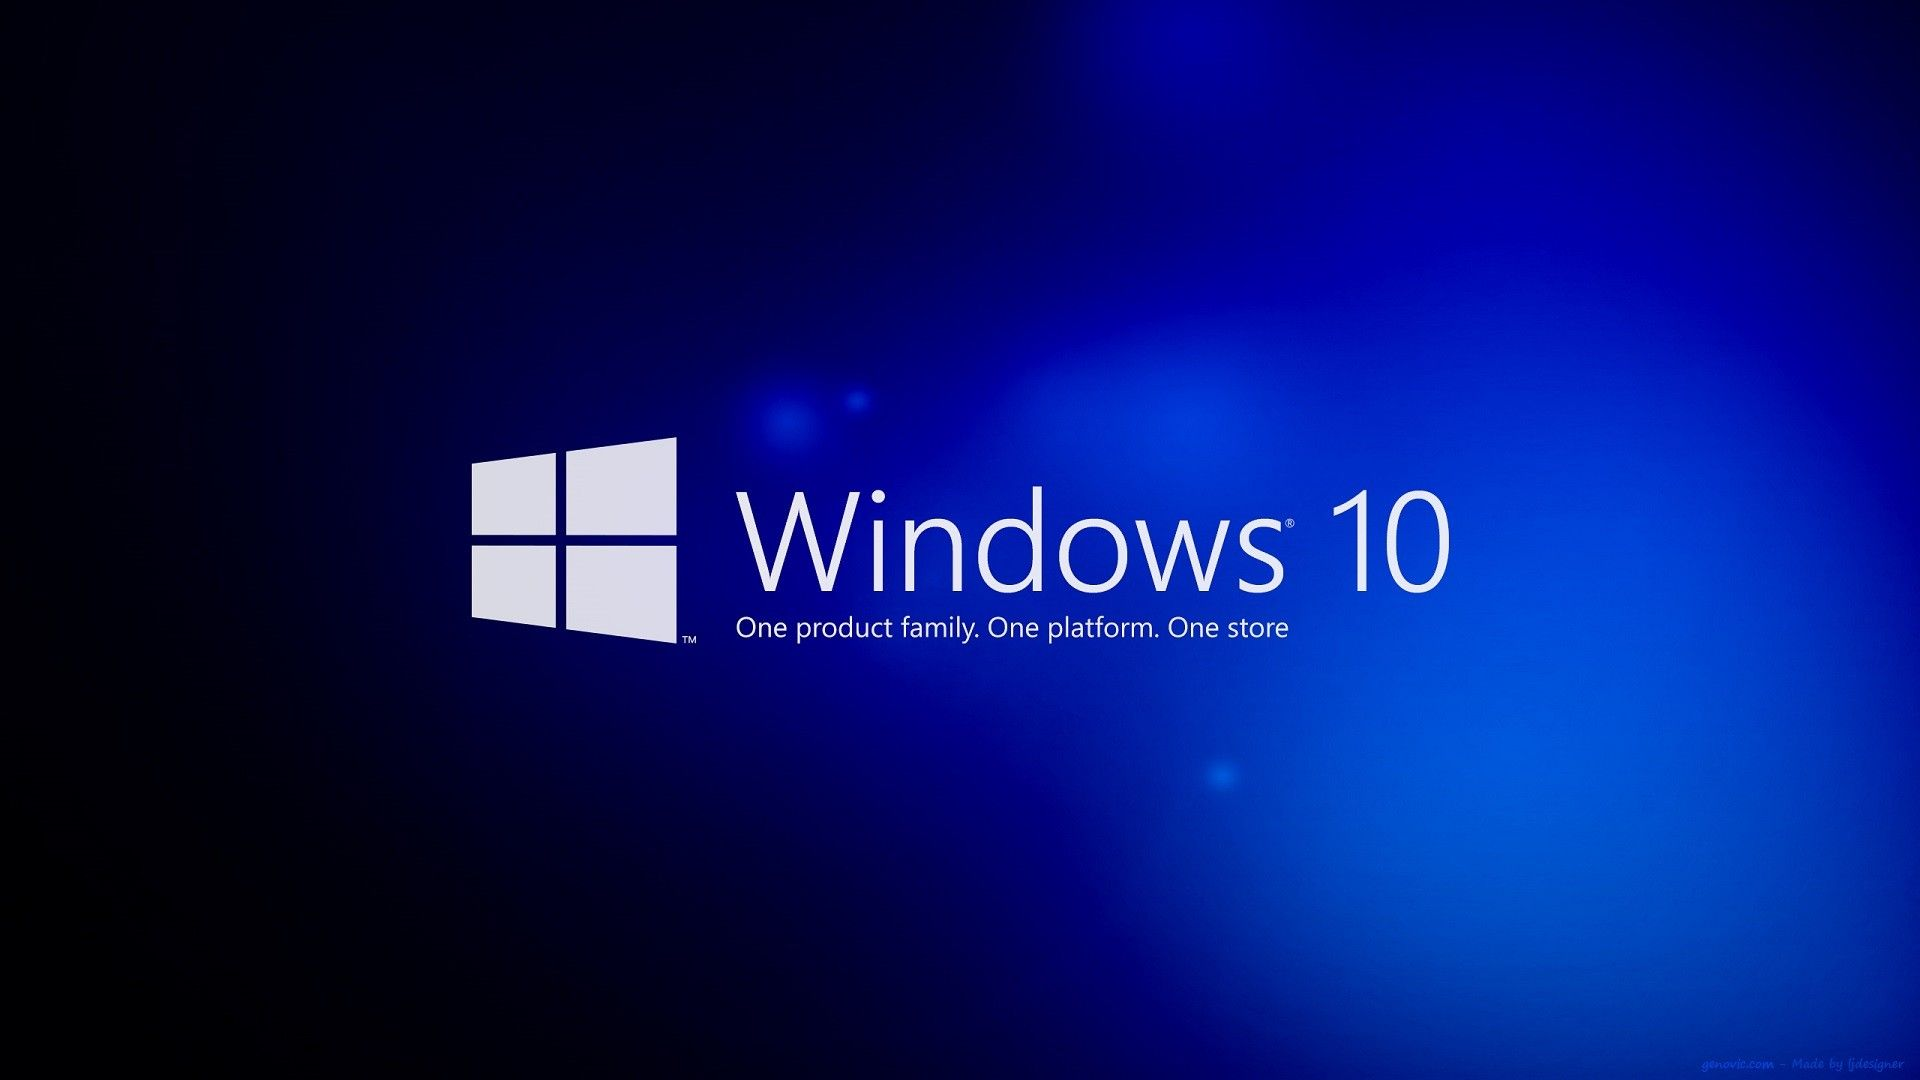 New Windows 10 Hd Wallpaper 1366x768 Sms Lucu Windows 10 Microsoft